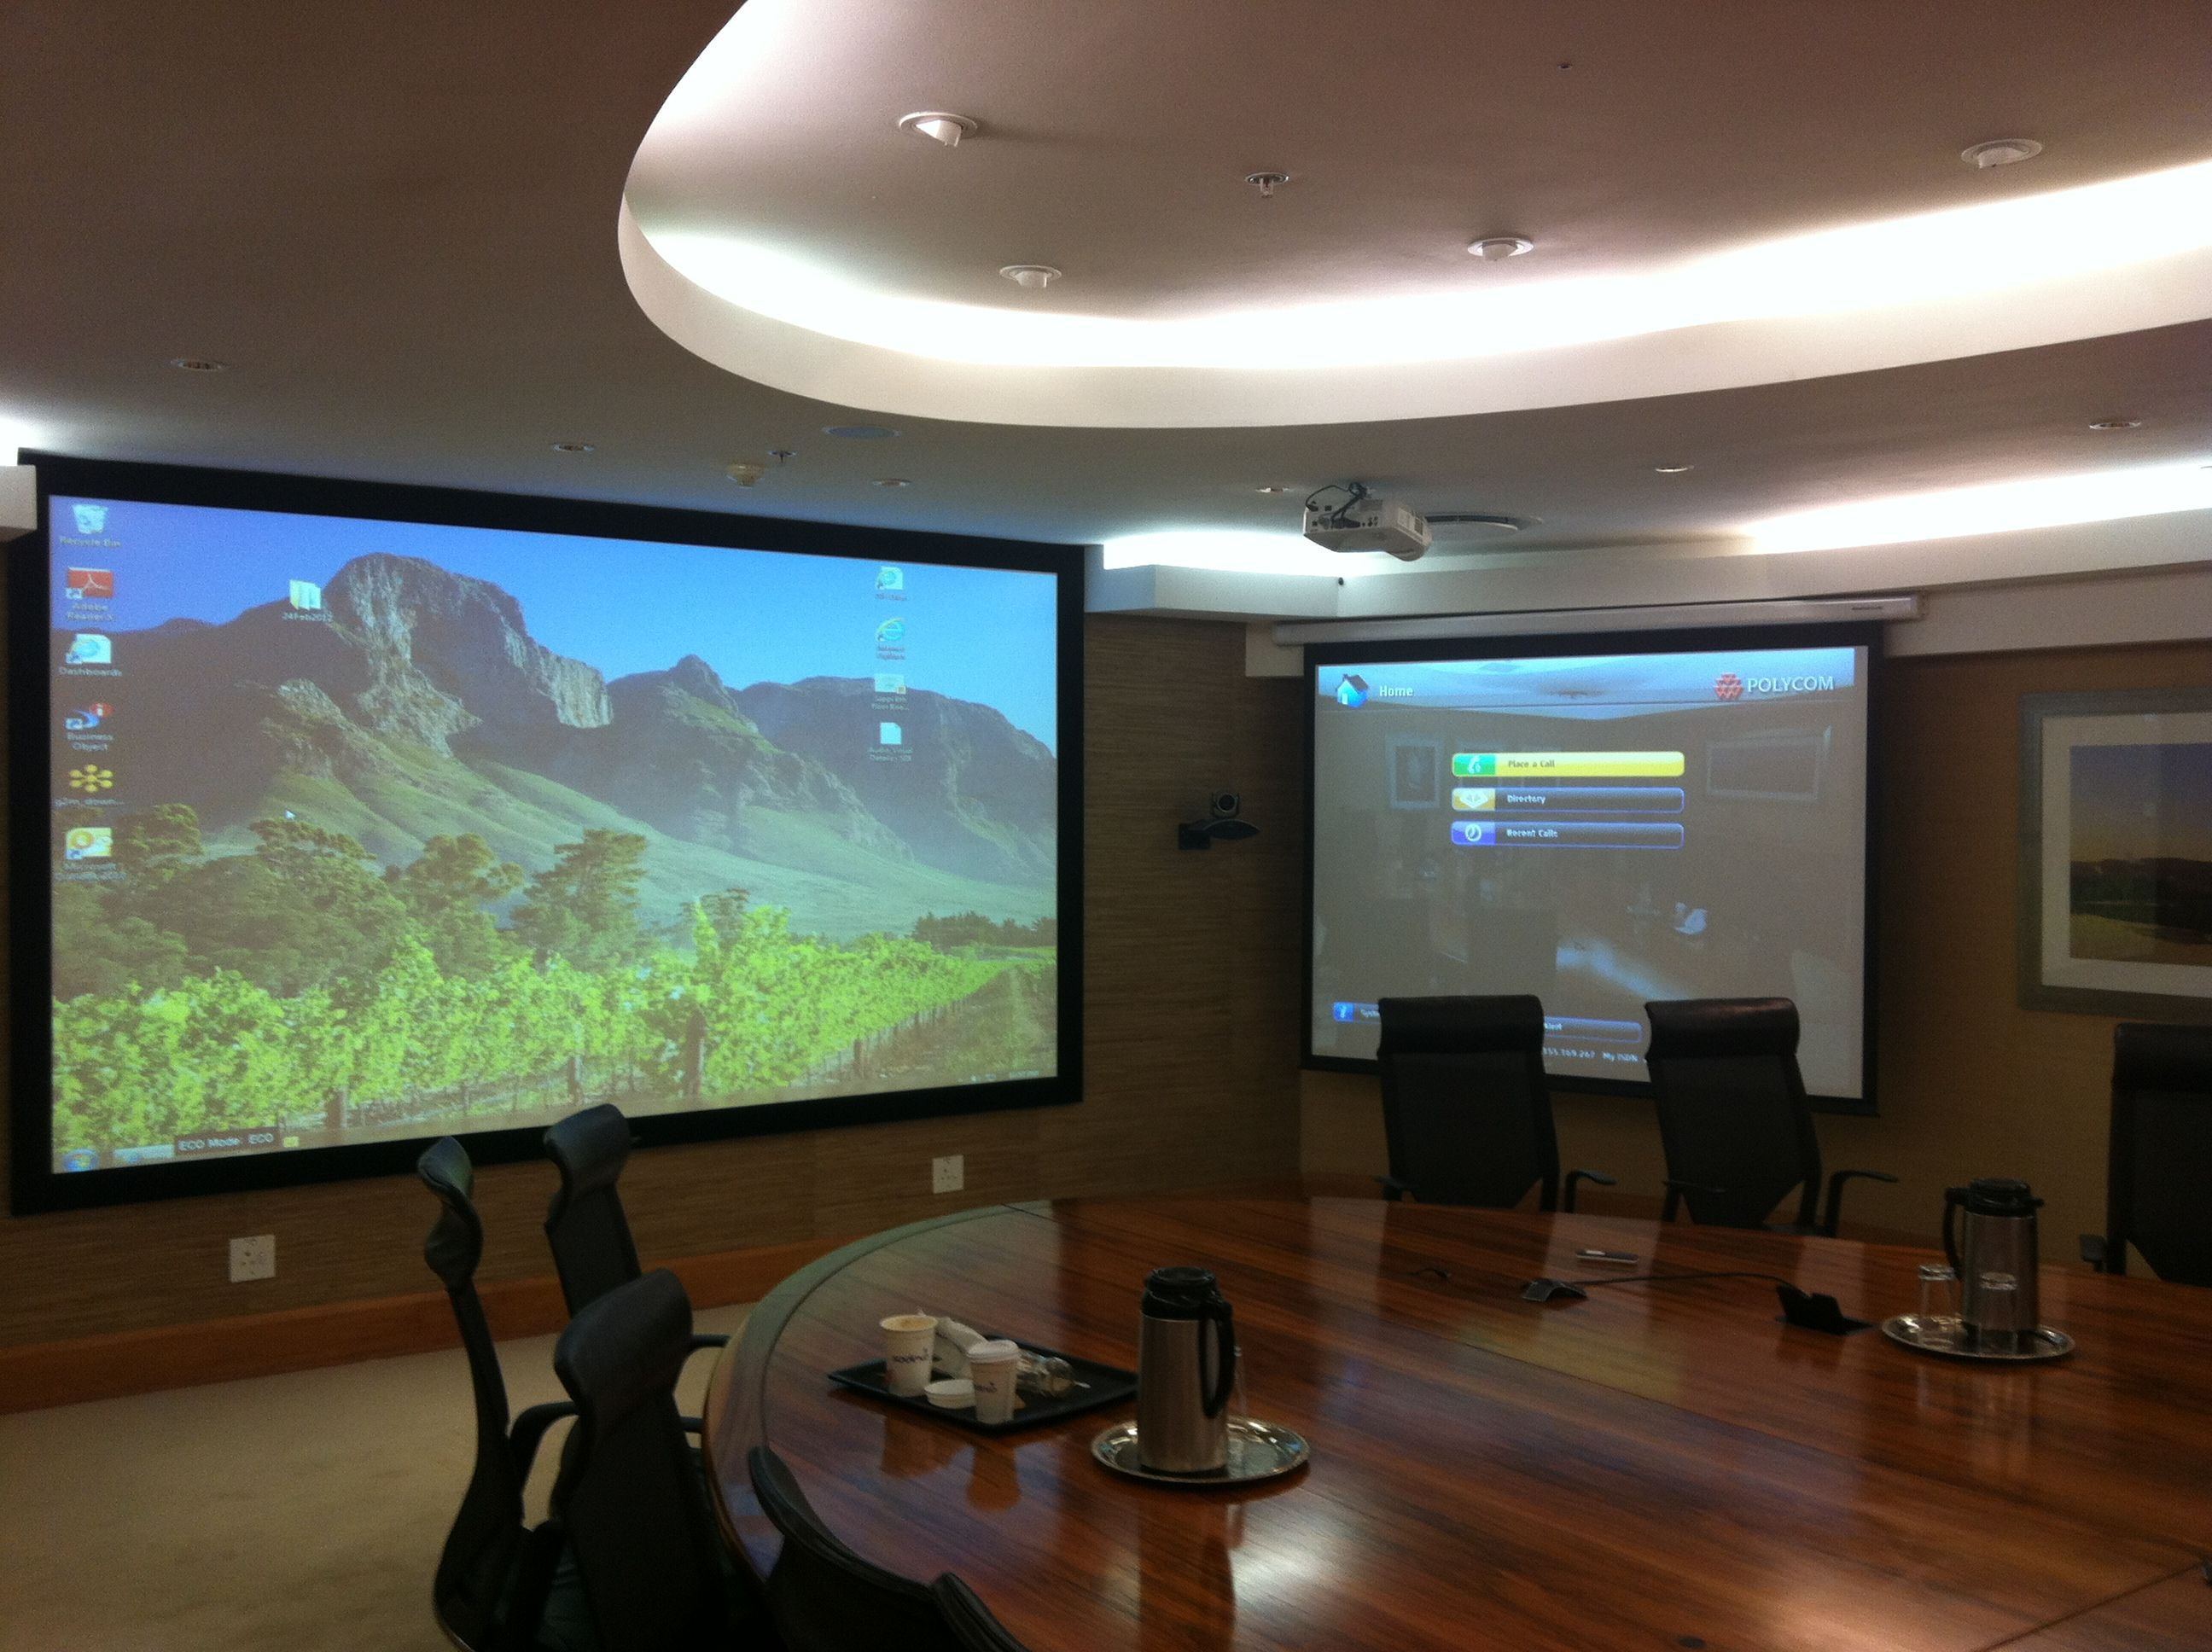 Boardroom AV Installation with Crestron Control and Polycom Video ...